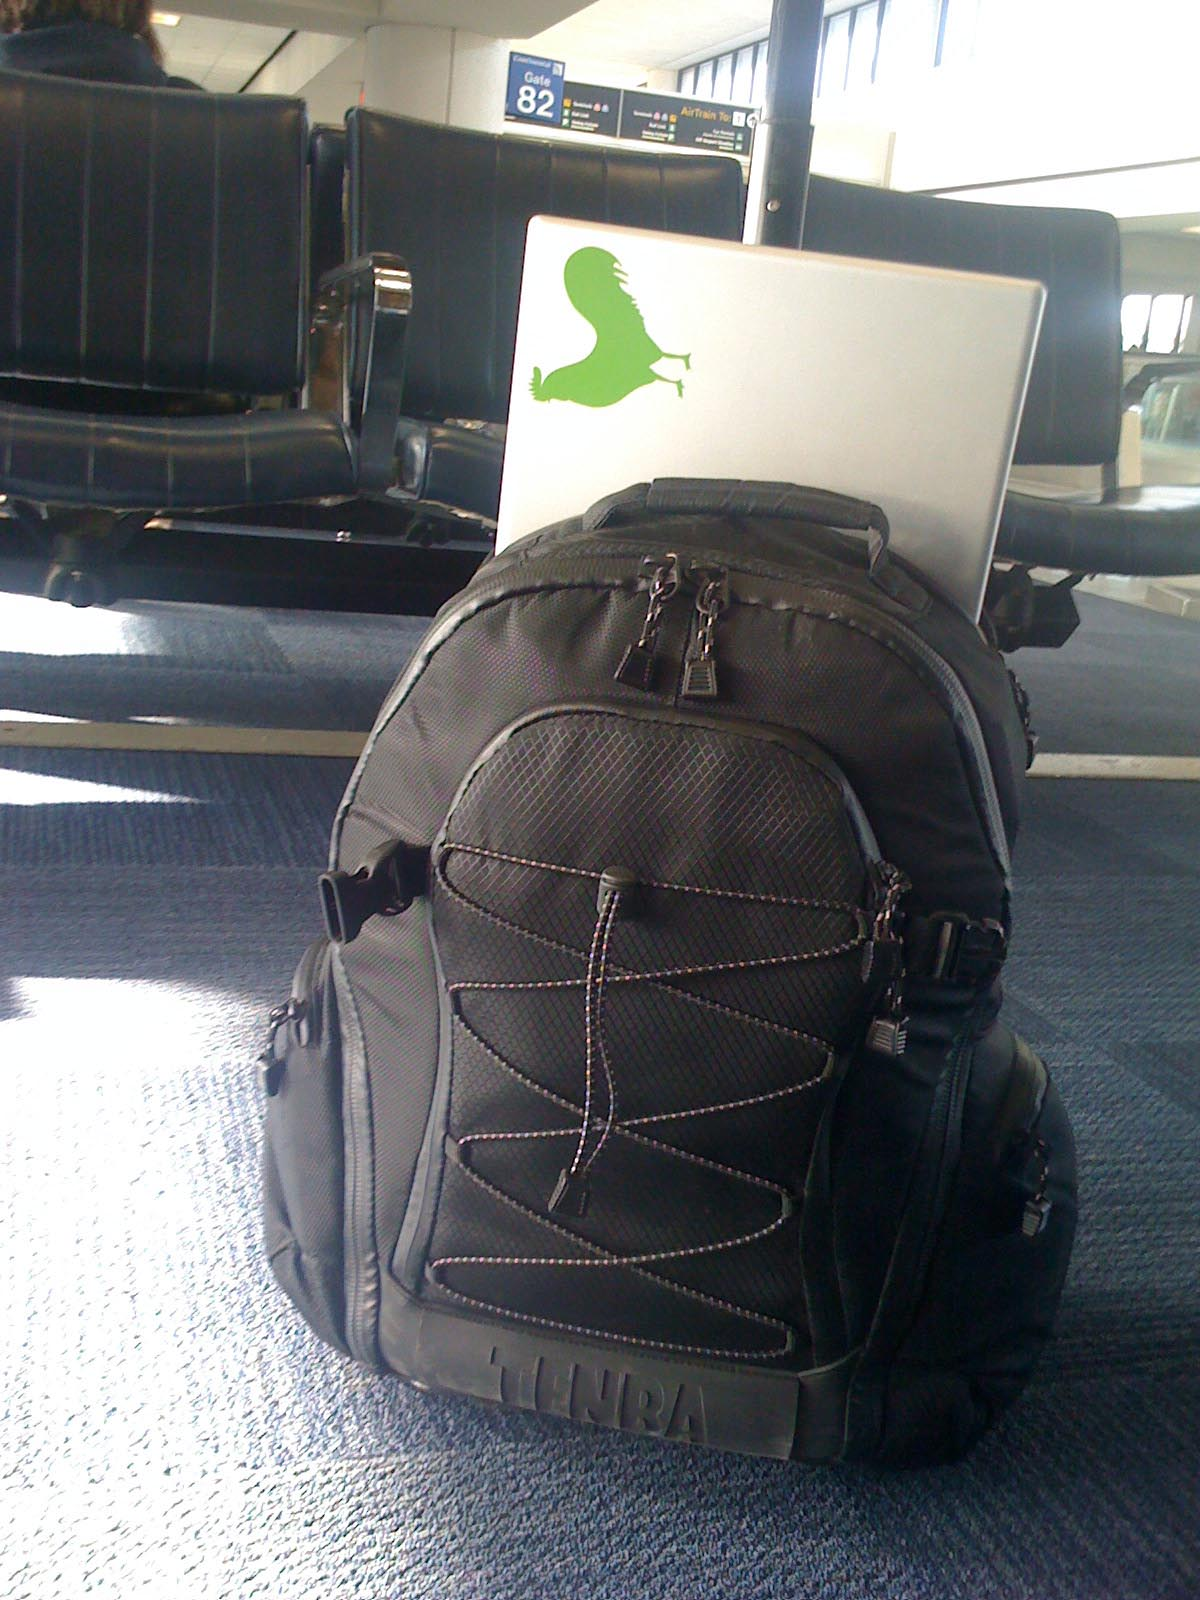 Tenba Shootout Medium Rolling Backpack @ Newark Airport